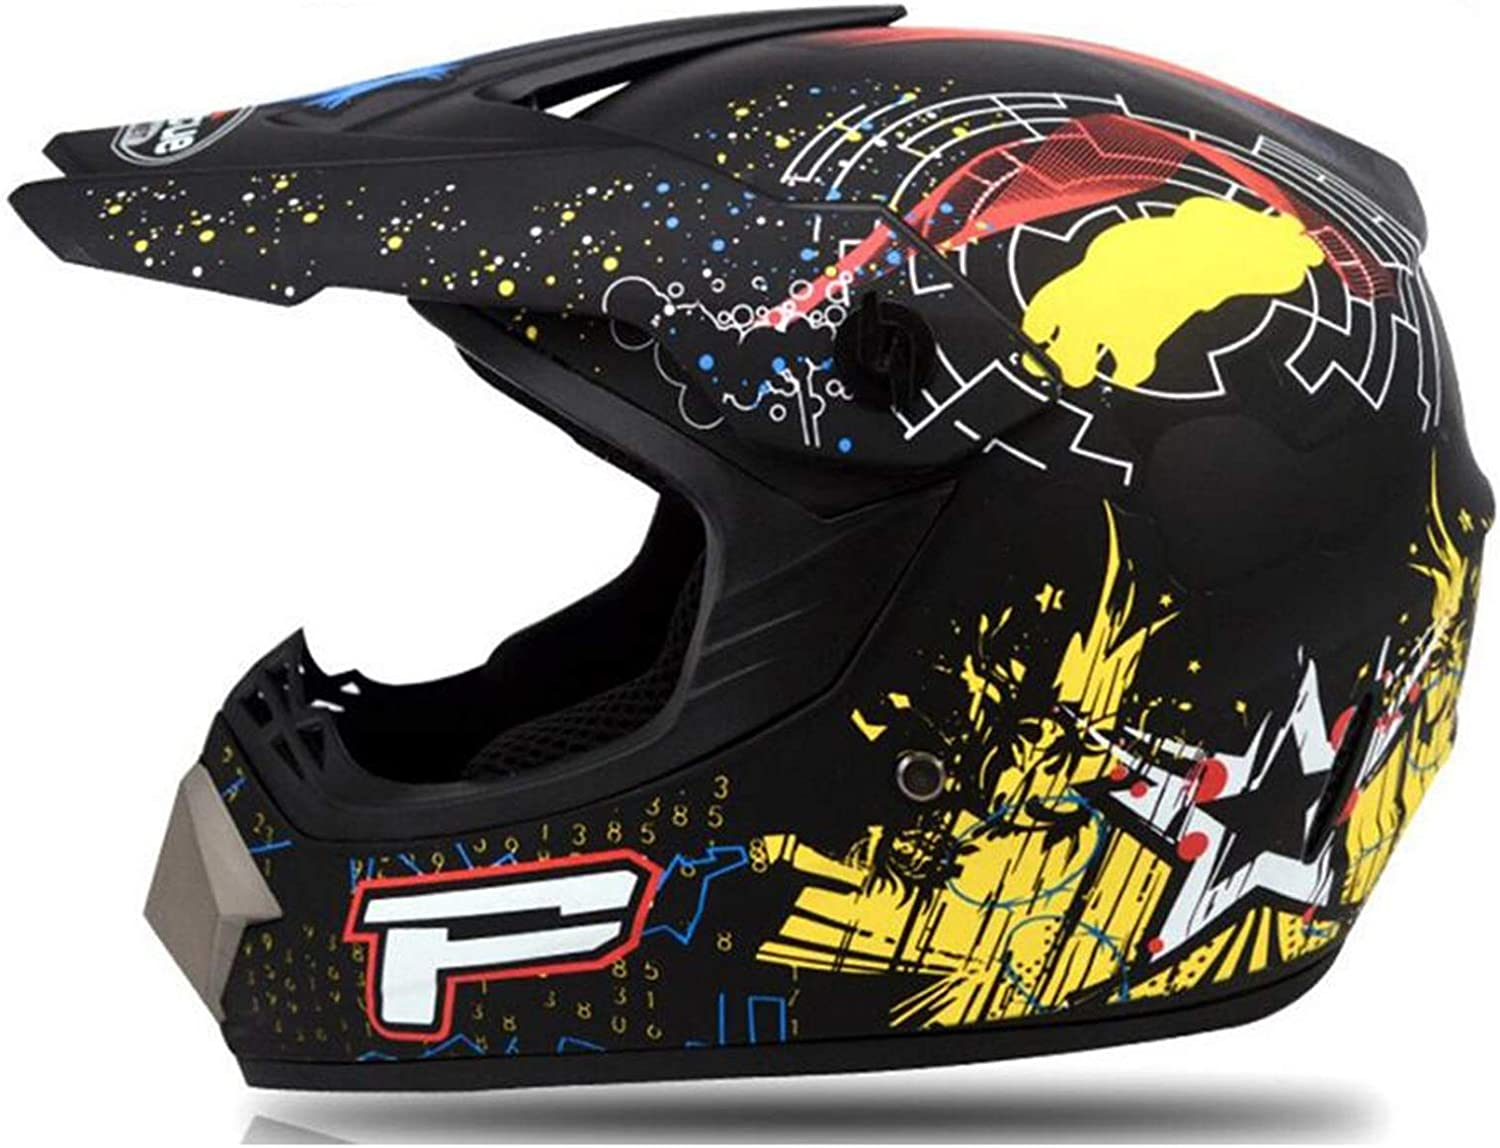 CHLDDHC Motocross Helmet Gloves Mask and Goggles Columbus Free shipping on posting reviews Mall DOT 4 of Set